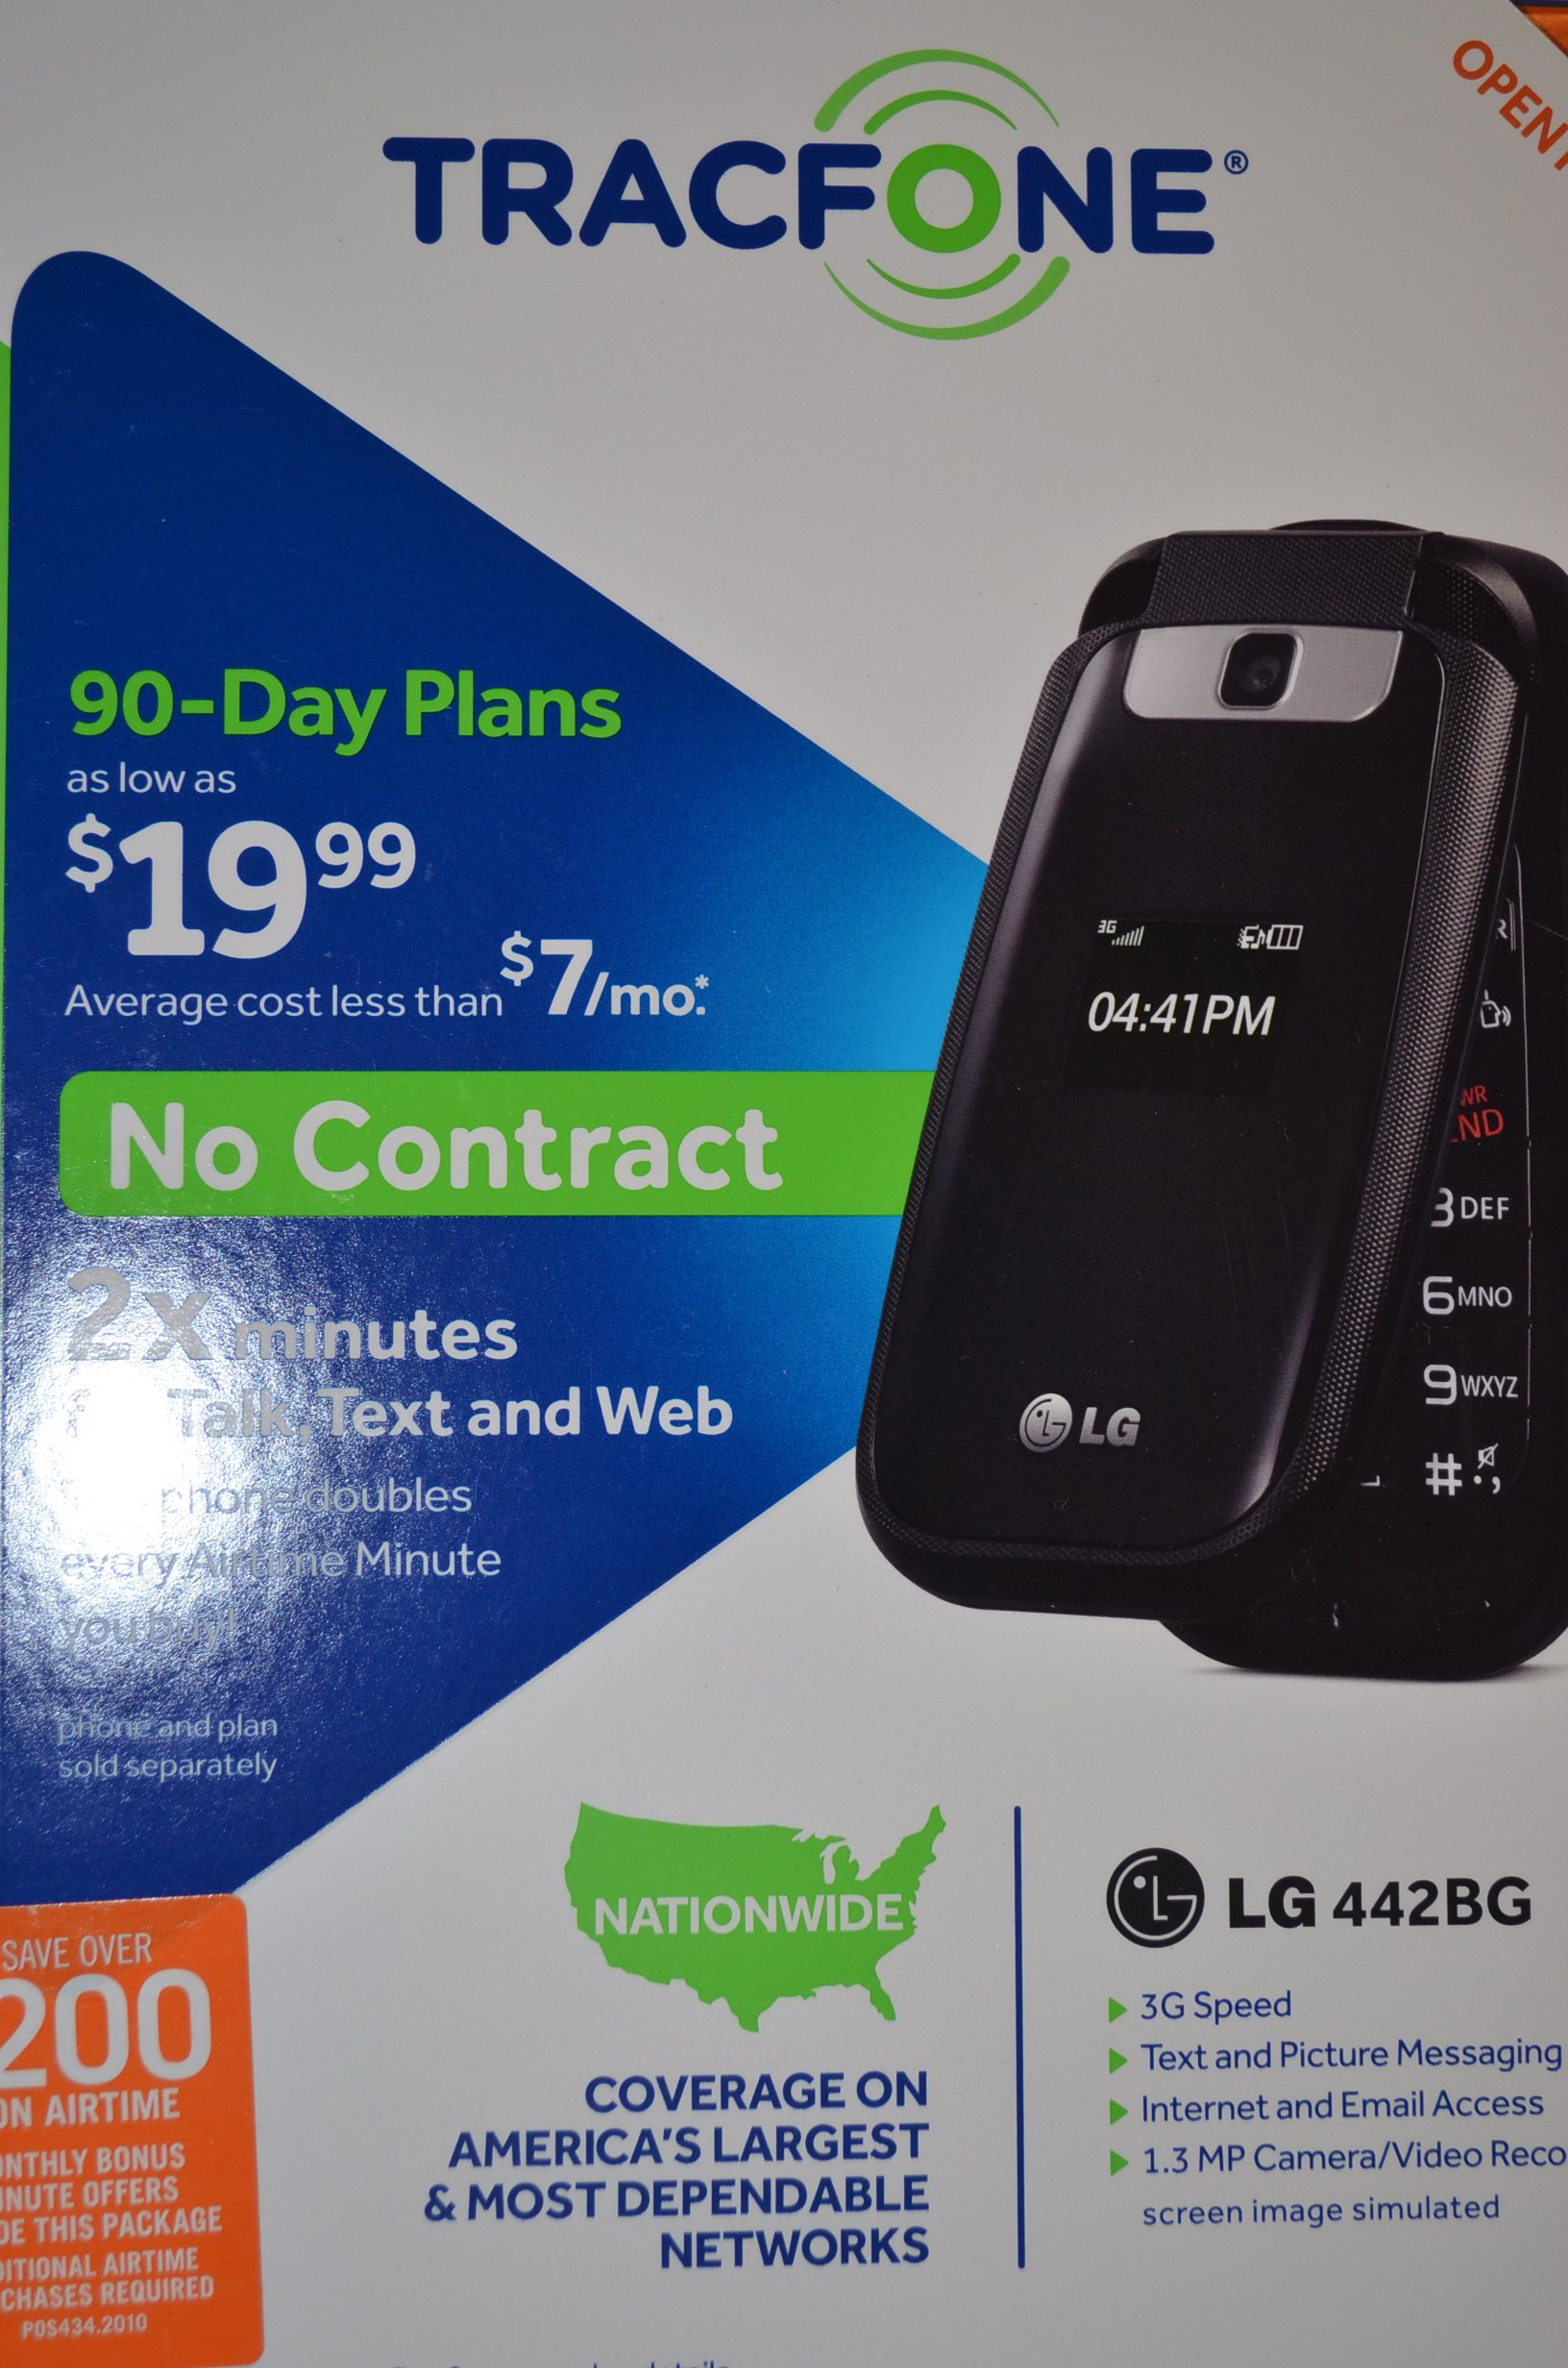 TRACFONE LG 442BG by Tracfone (Image #1)